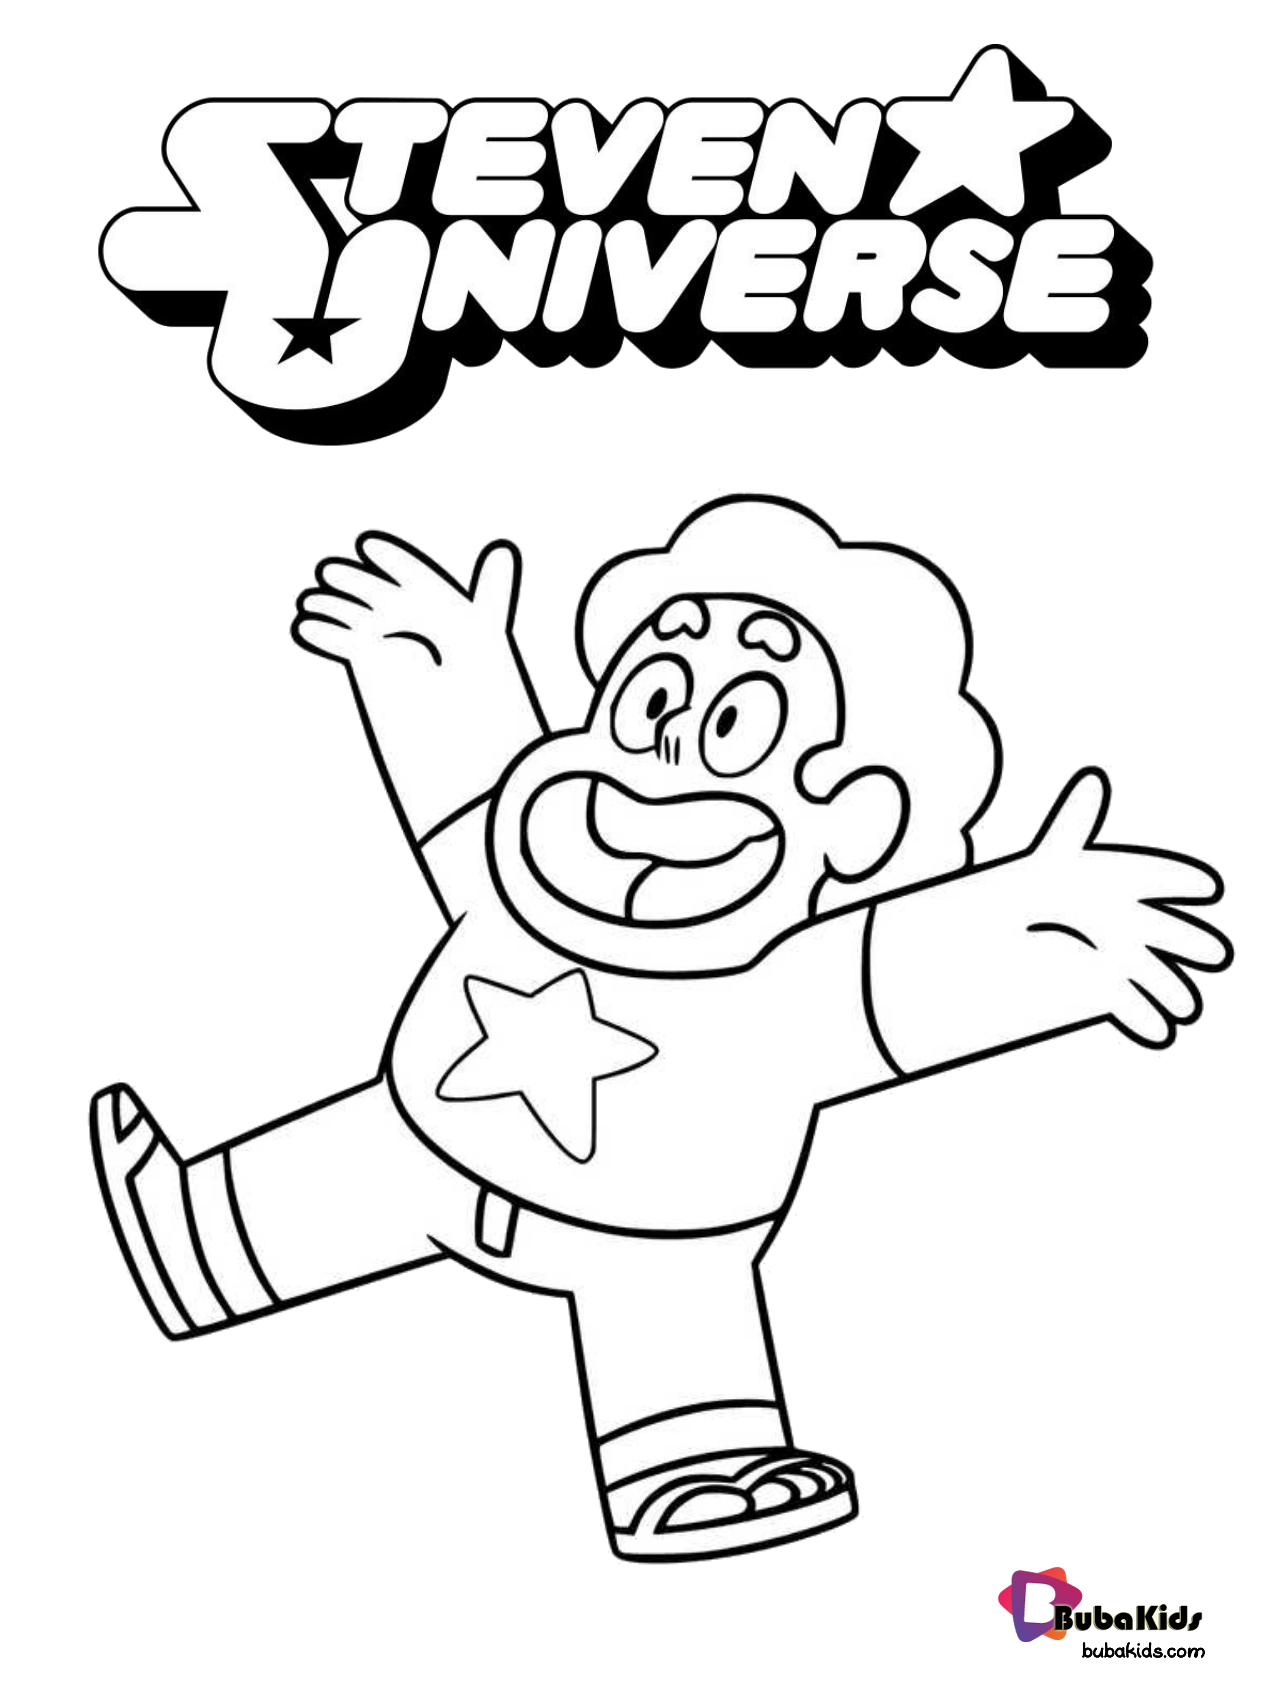 Steven Universe Coloring Page Collection Of Cartoon Coloring Pages For Teenage Printable That You Can D Coloring Pages Steven Universe Cartoon Coloring Pages